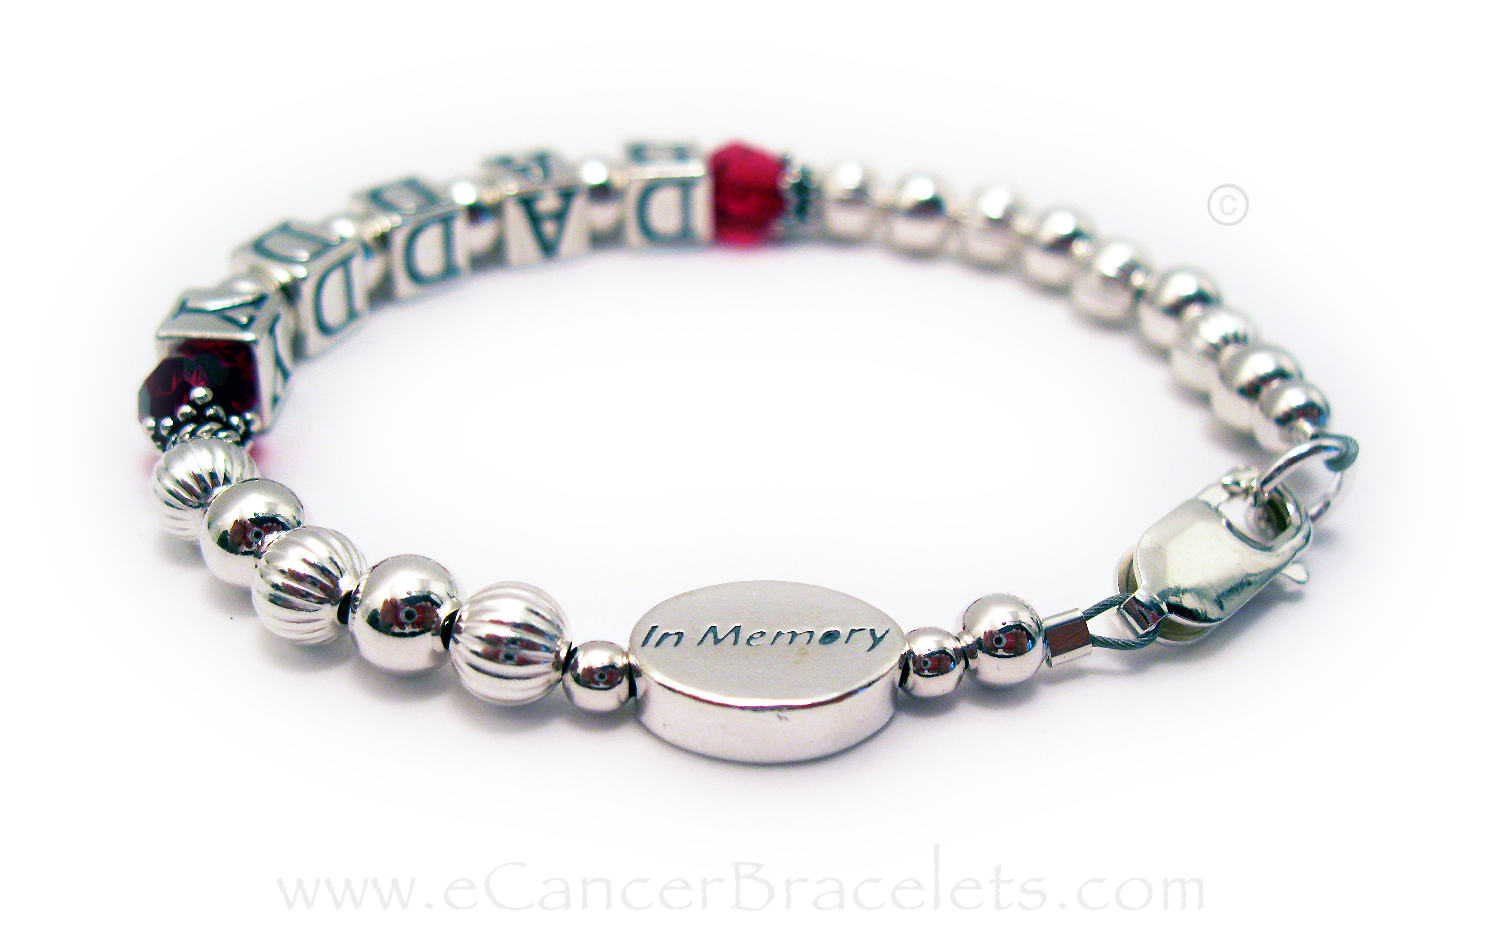 CBBRibbon 50   In-Memory of Daddy Bracelet. Shown with July or red Swarovski crystals and an IN MEMORY bead.